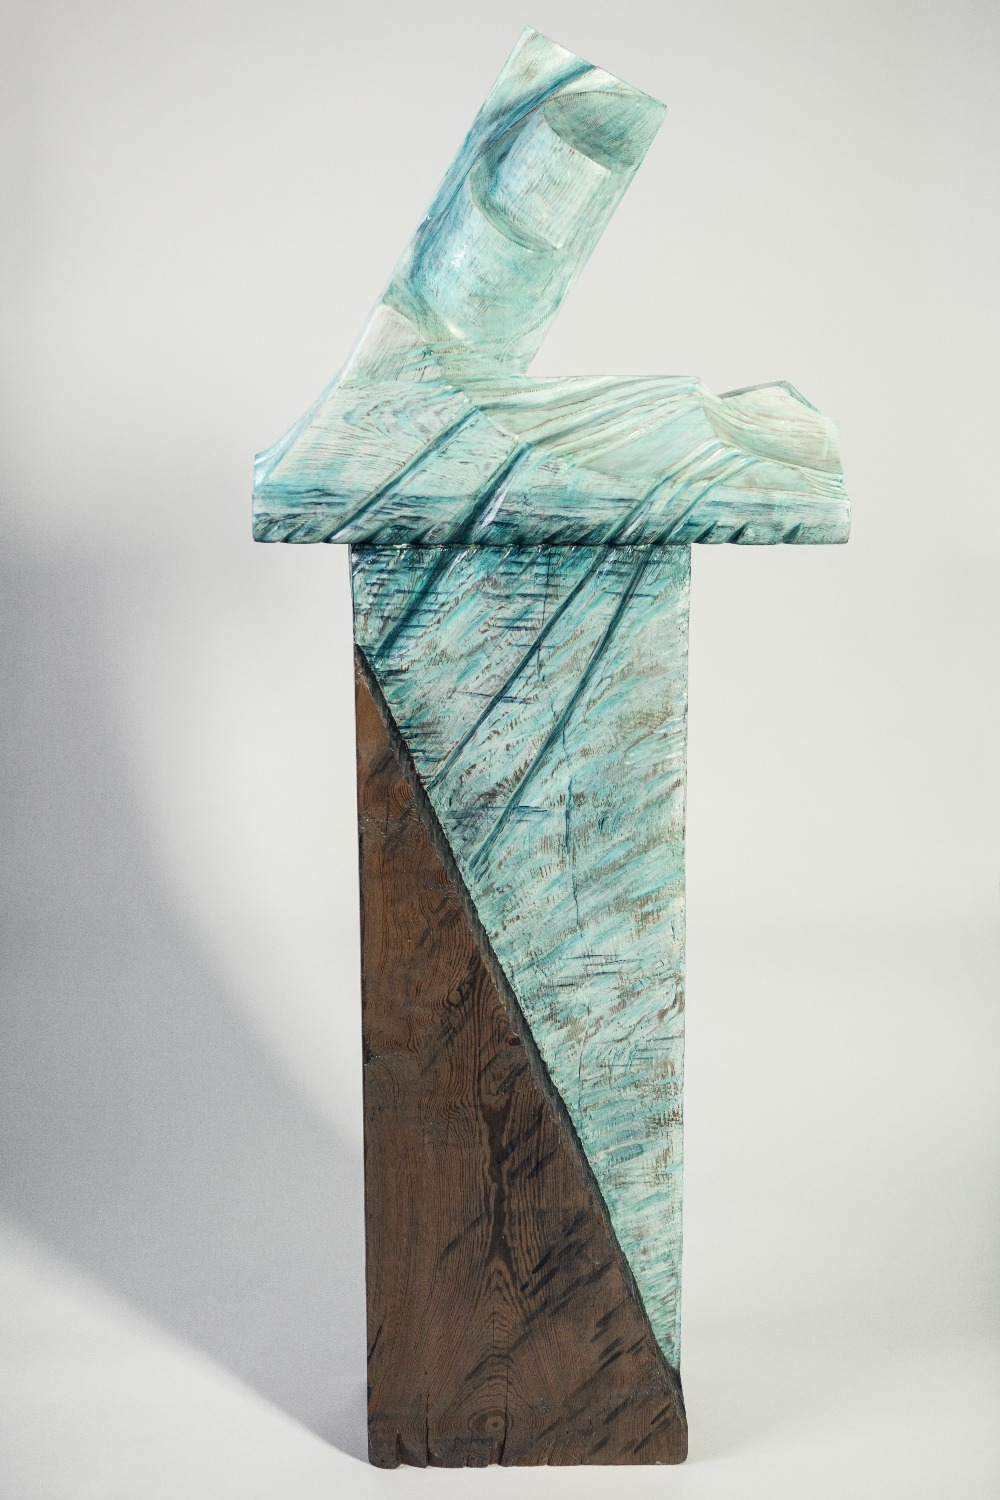 Lot 93 - GLENYS LATHAM RECLAIMED PITCH PINE SCULPTURE WITH ACRYLIC PAINT 'Nanortalik Ice Mountain' Signed